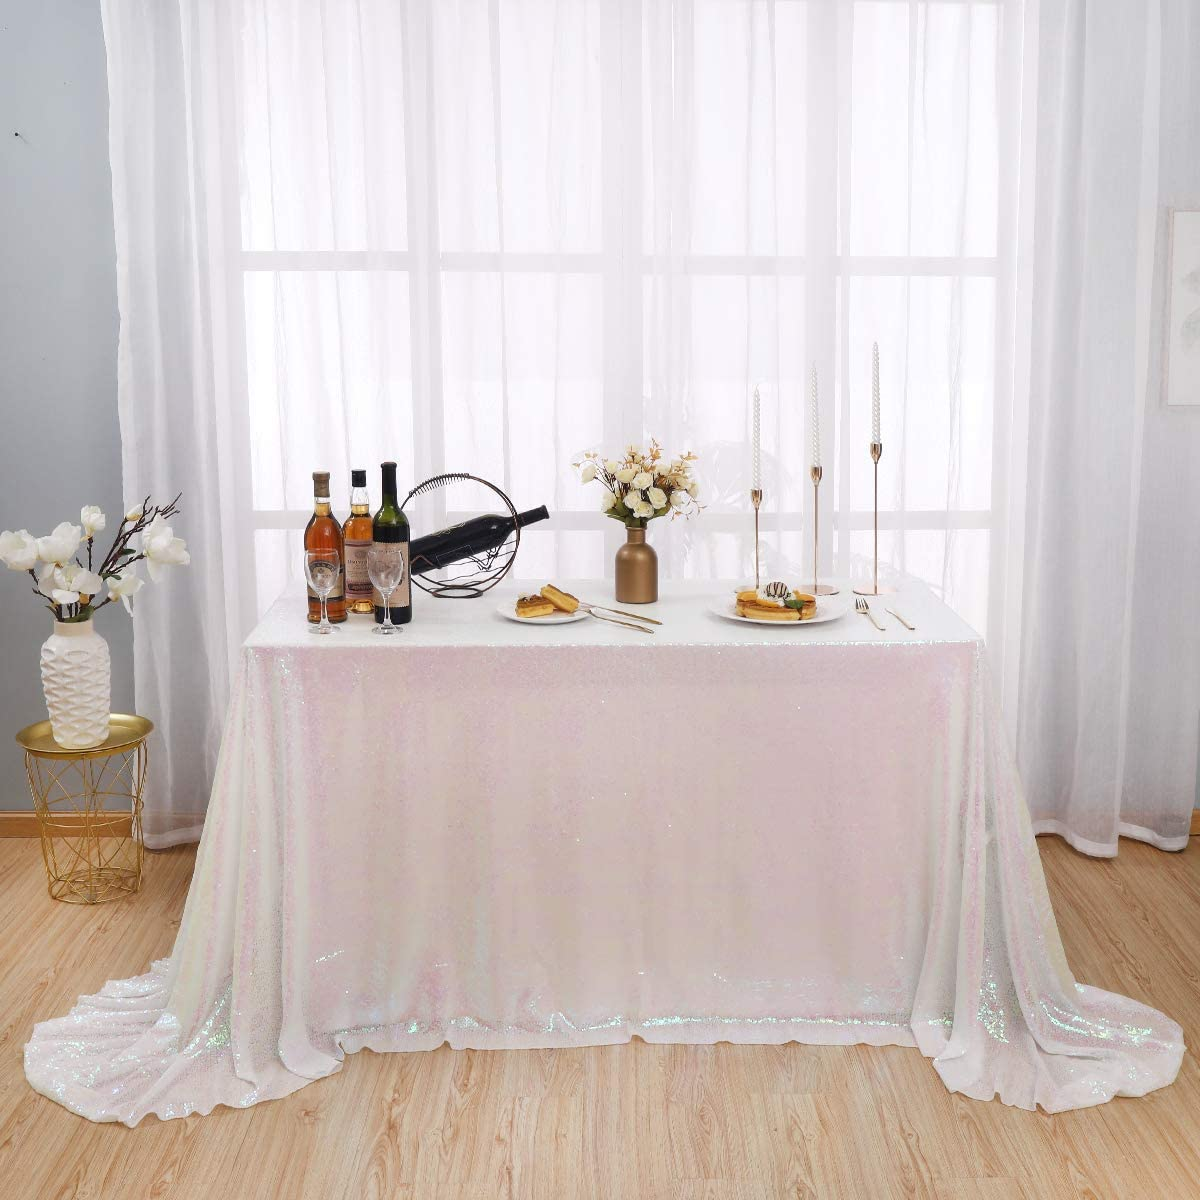 Kirsooku White Sequin Tablecloth Glitter Spring new work Max 83% OFF one after another Shim Iridescent Sparkly